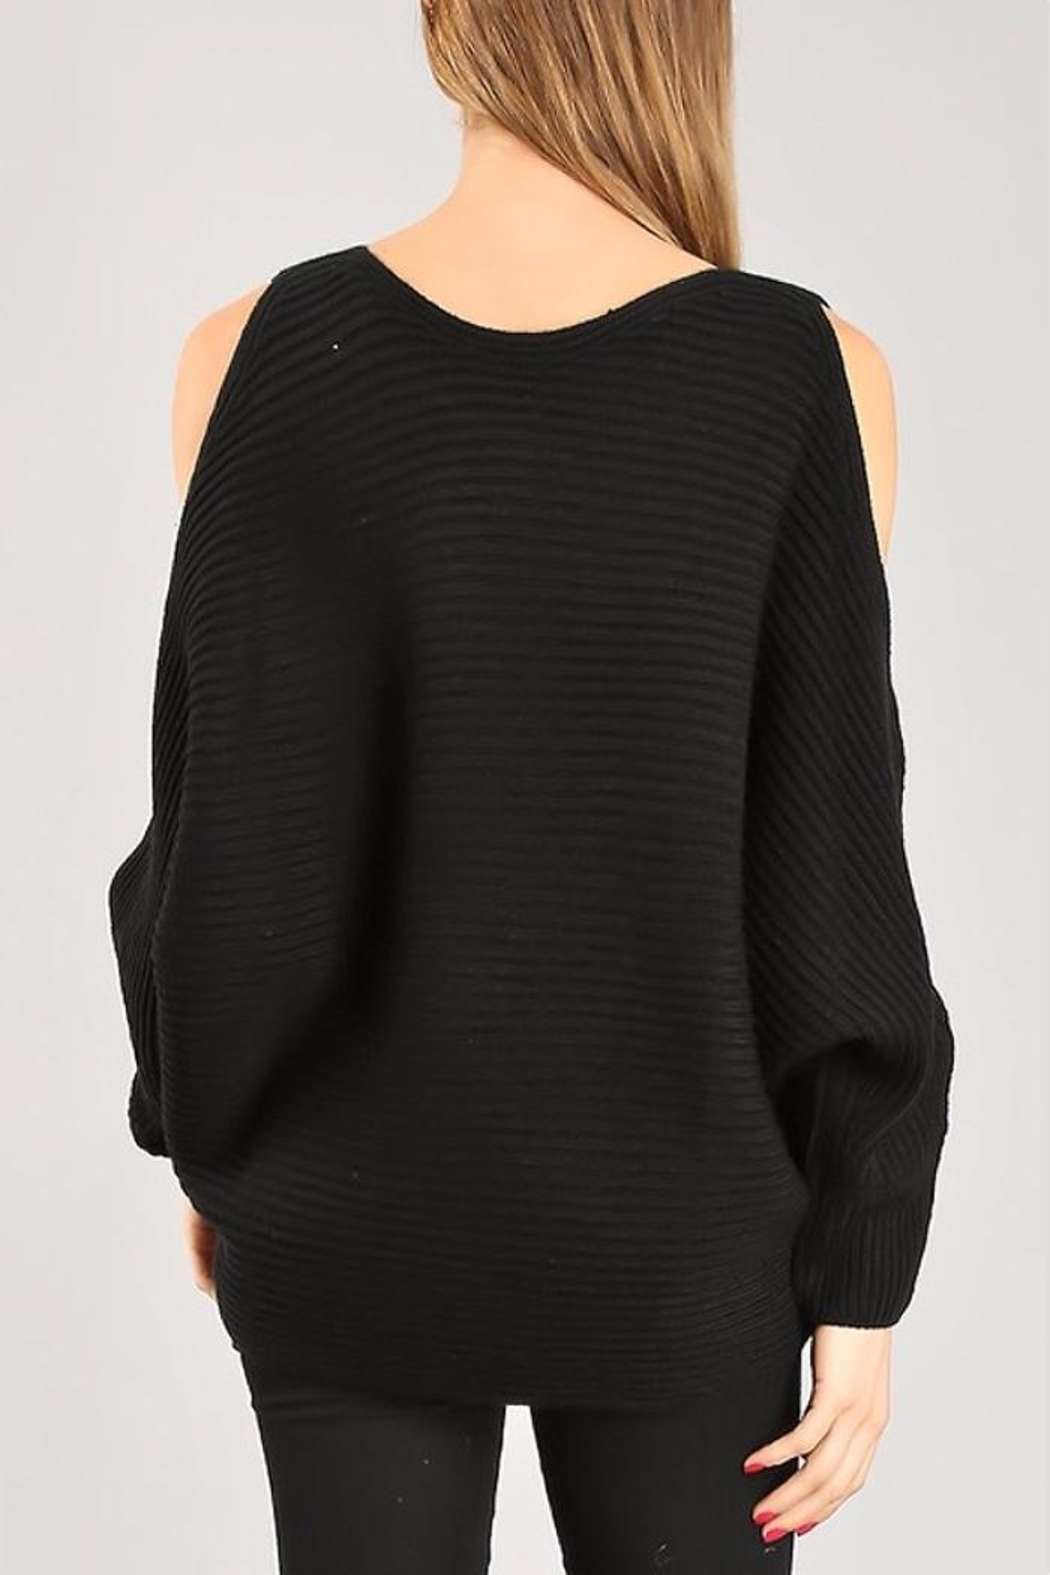 People Outfitter Now'n Ever Sweater - Front Full Image